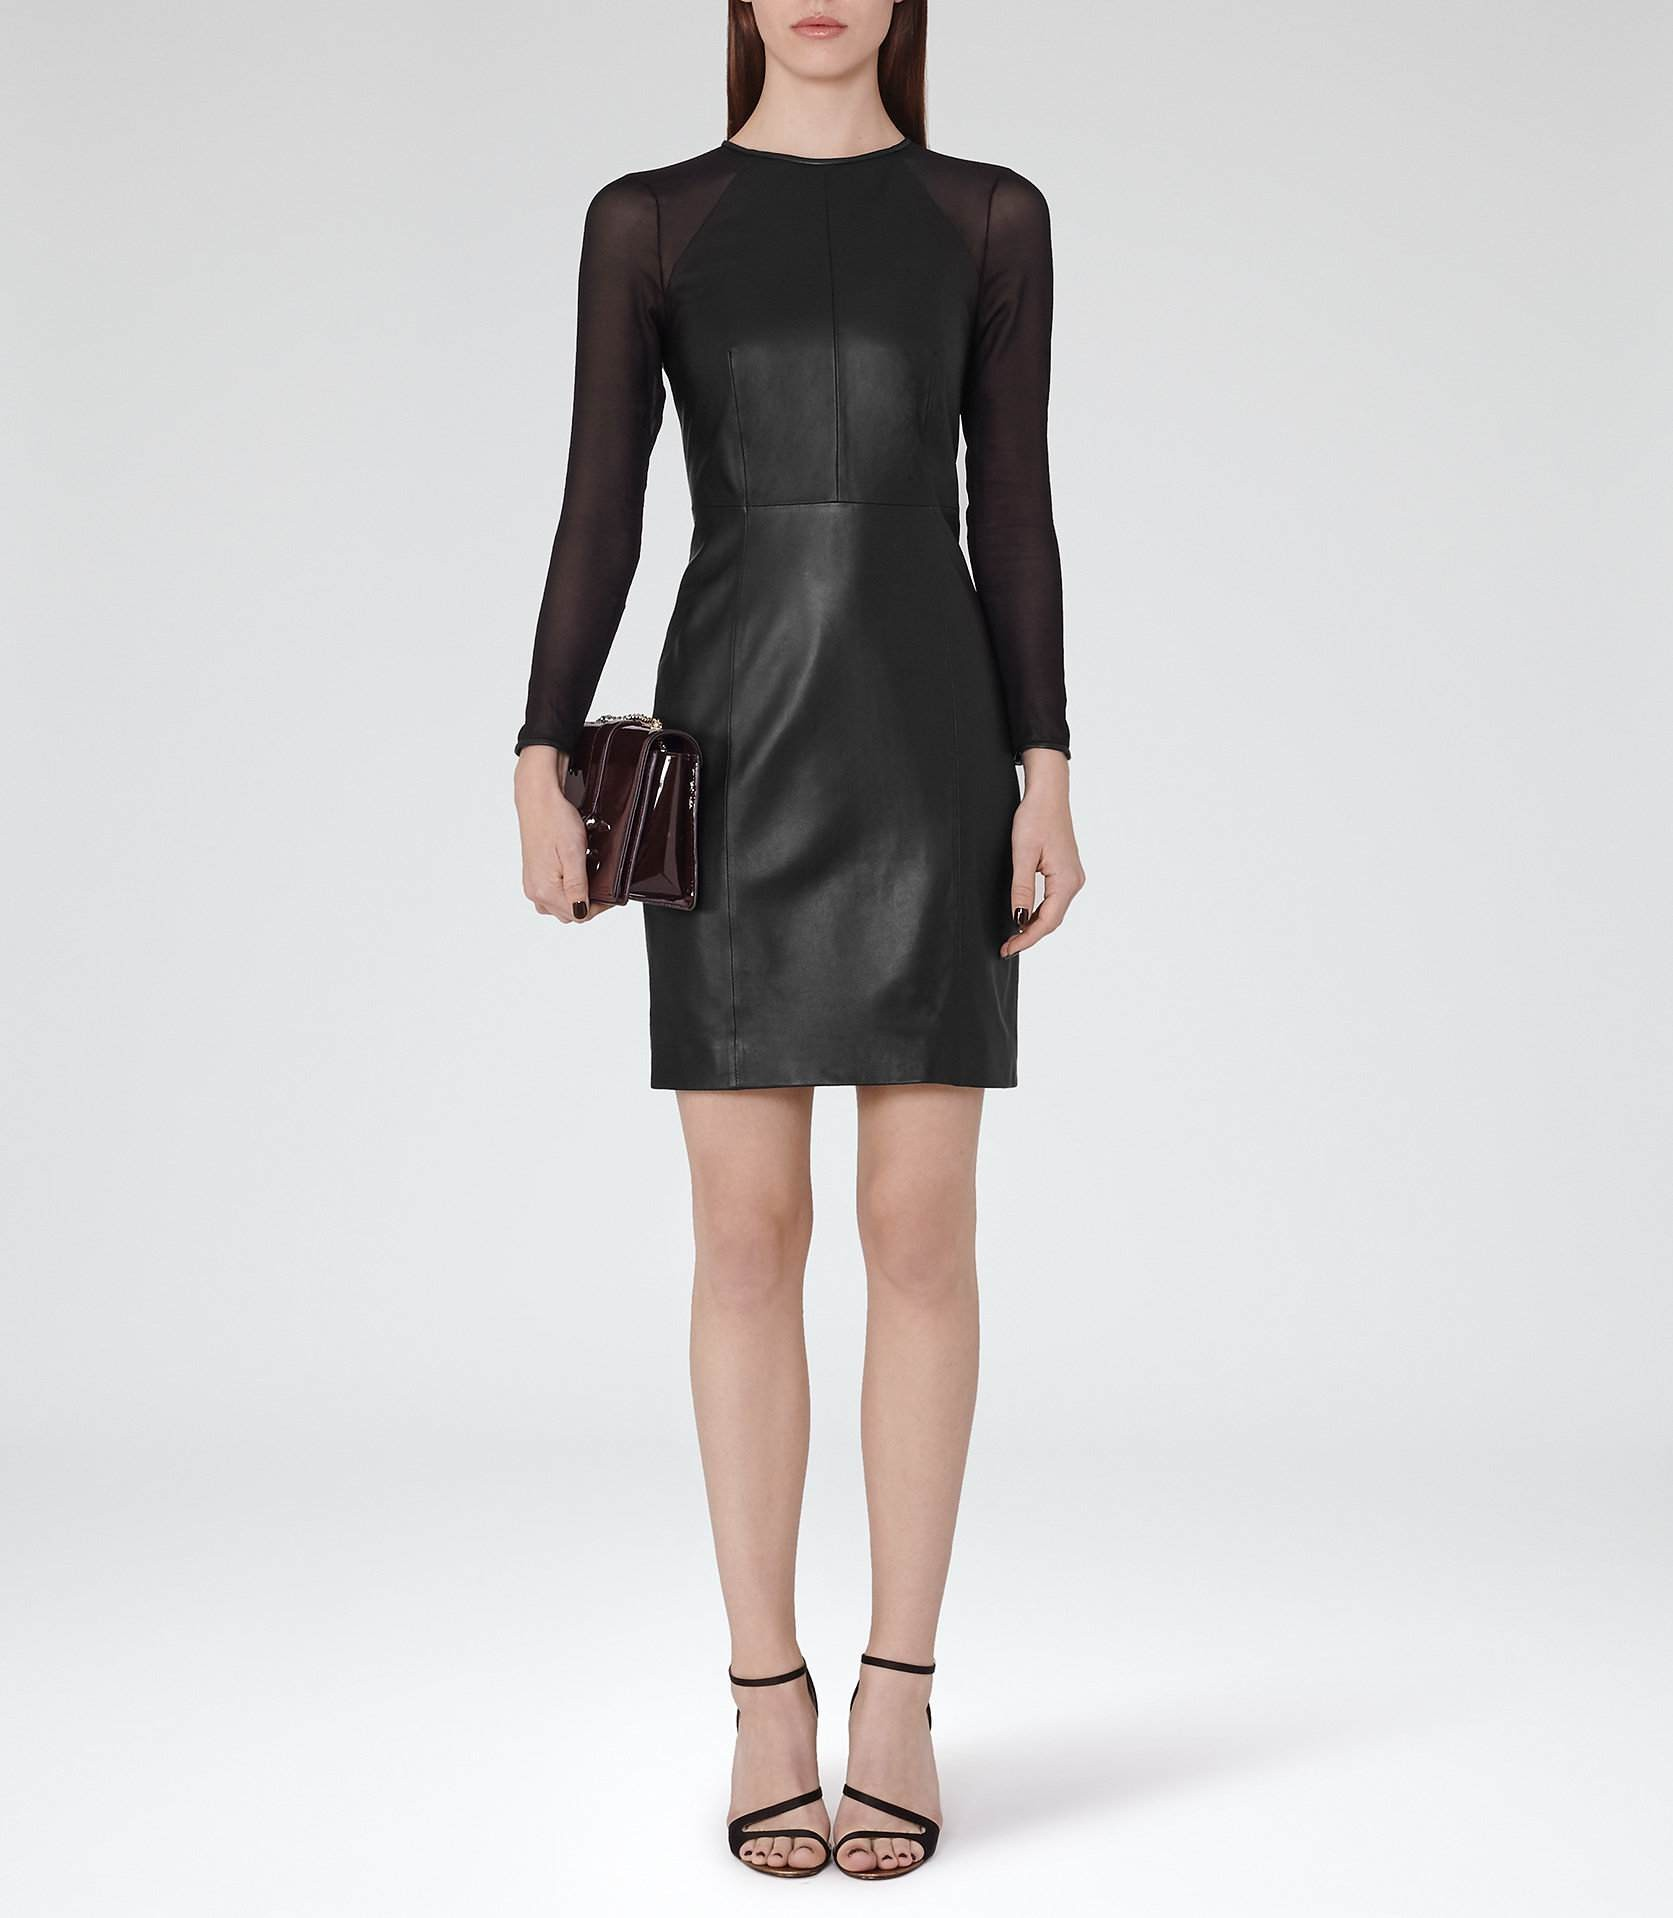 Black Leather Chiffon Dress